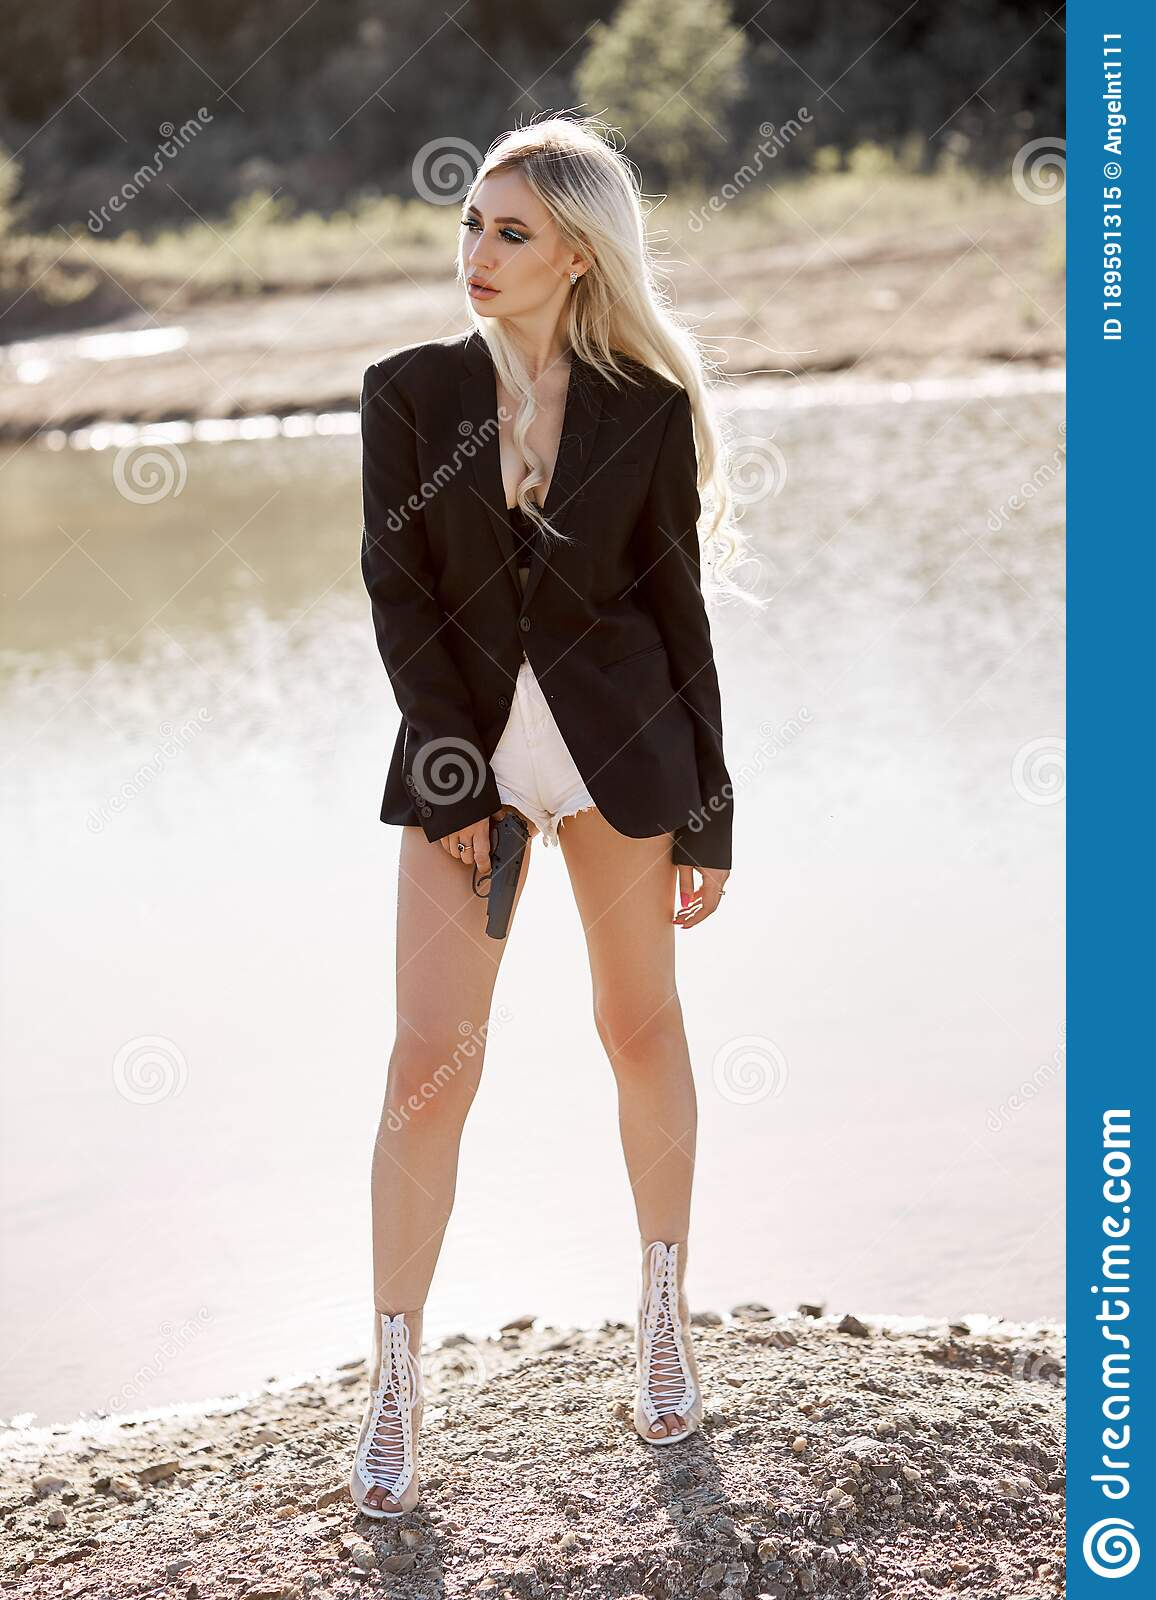 Blonde Woman With A Gun In Her Hands Spy Girl In Short Shorts And Weapons In Hand Stock Image Image Of Hand Military 189591315